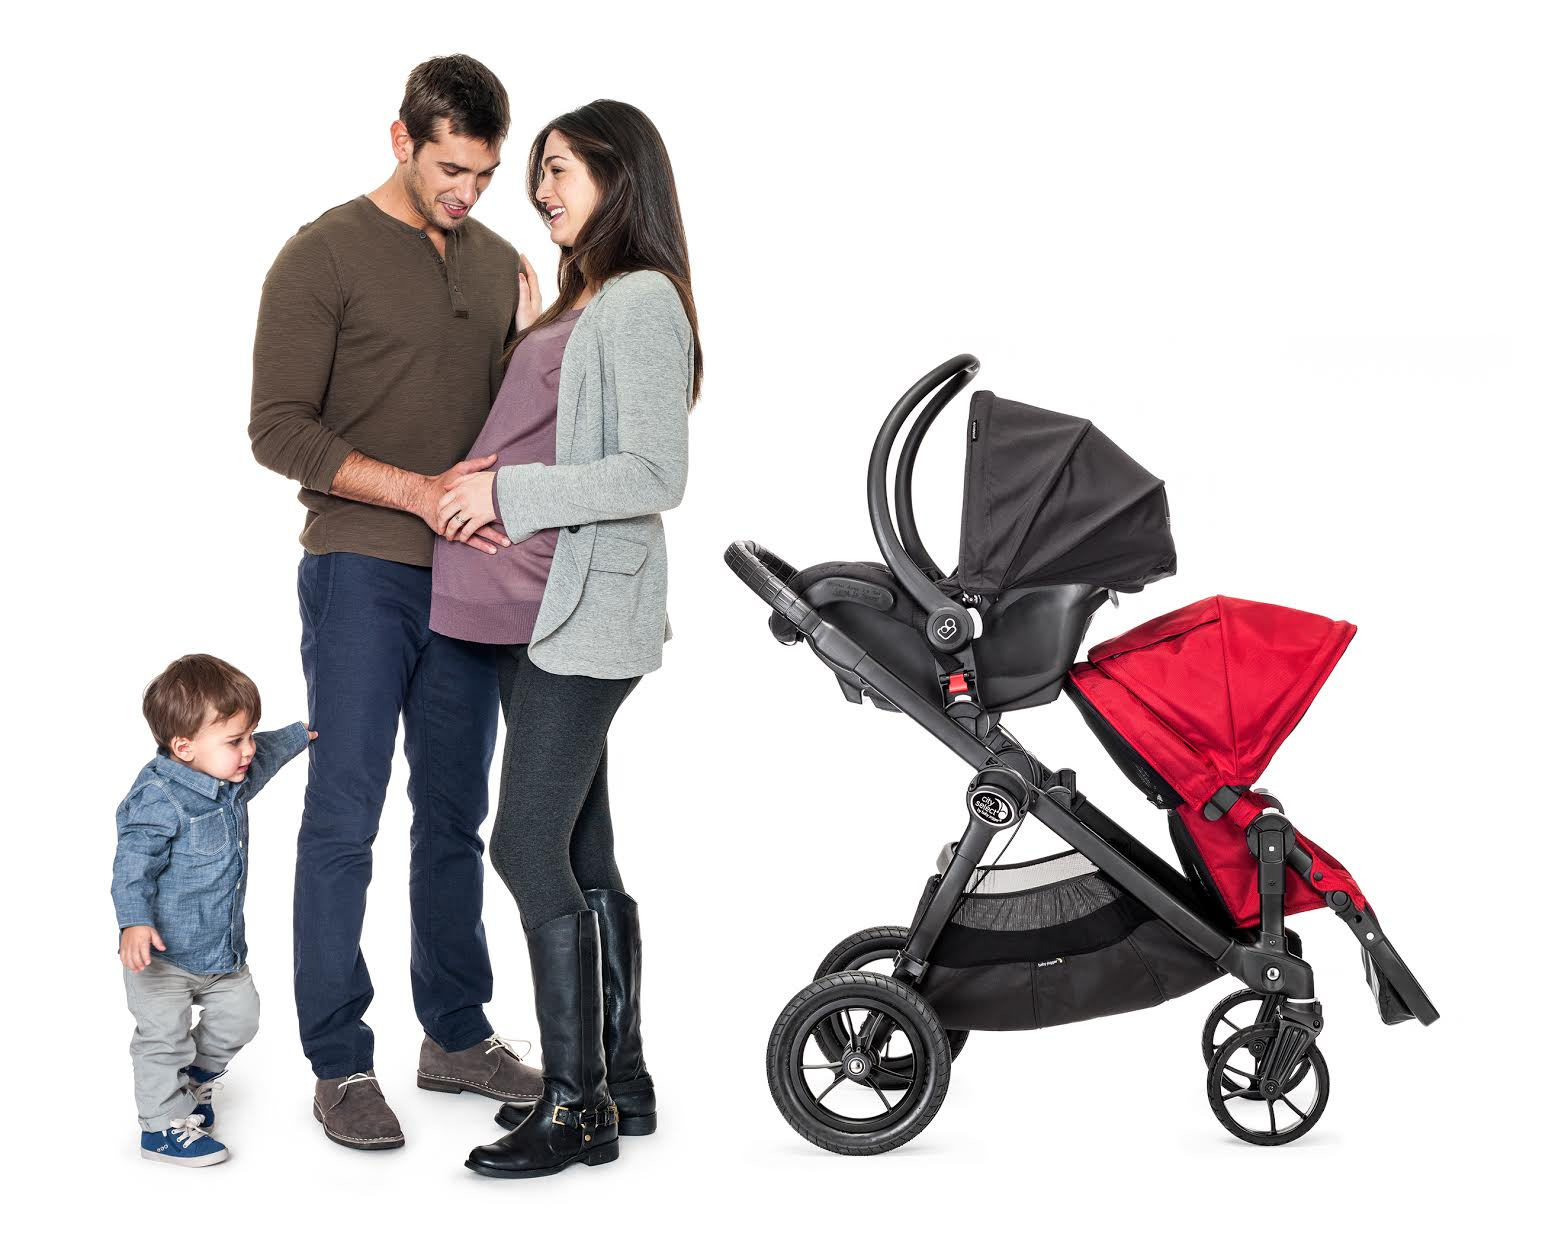 Britax Car Seat With Stroller Time For A Car Seat Reality Check Huffpost Life